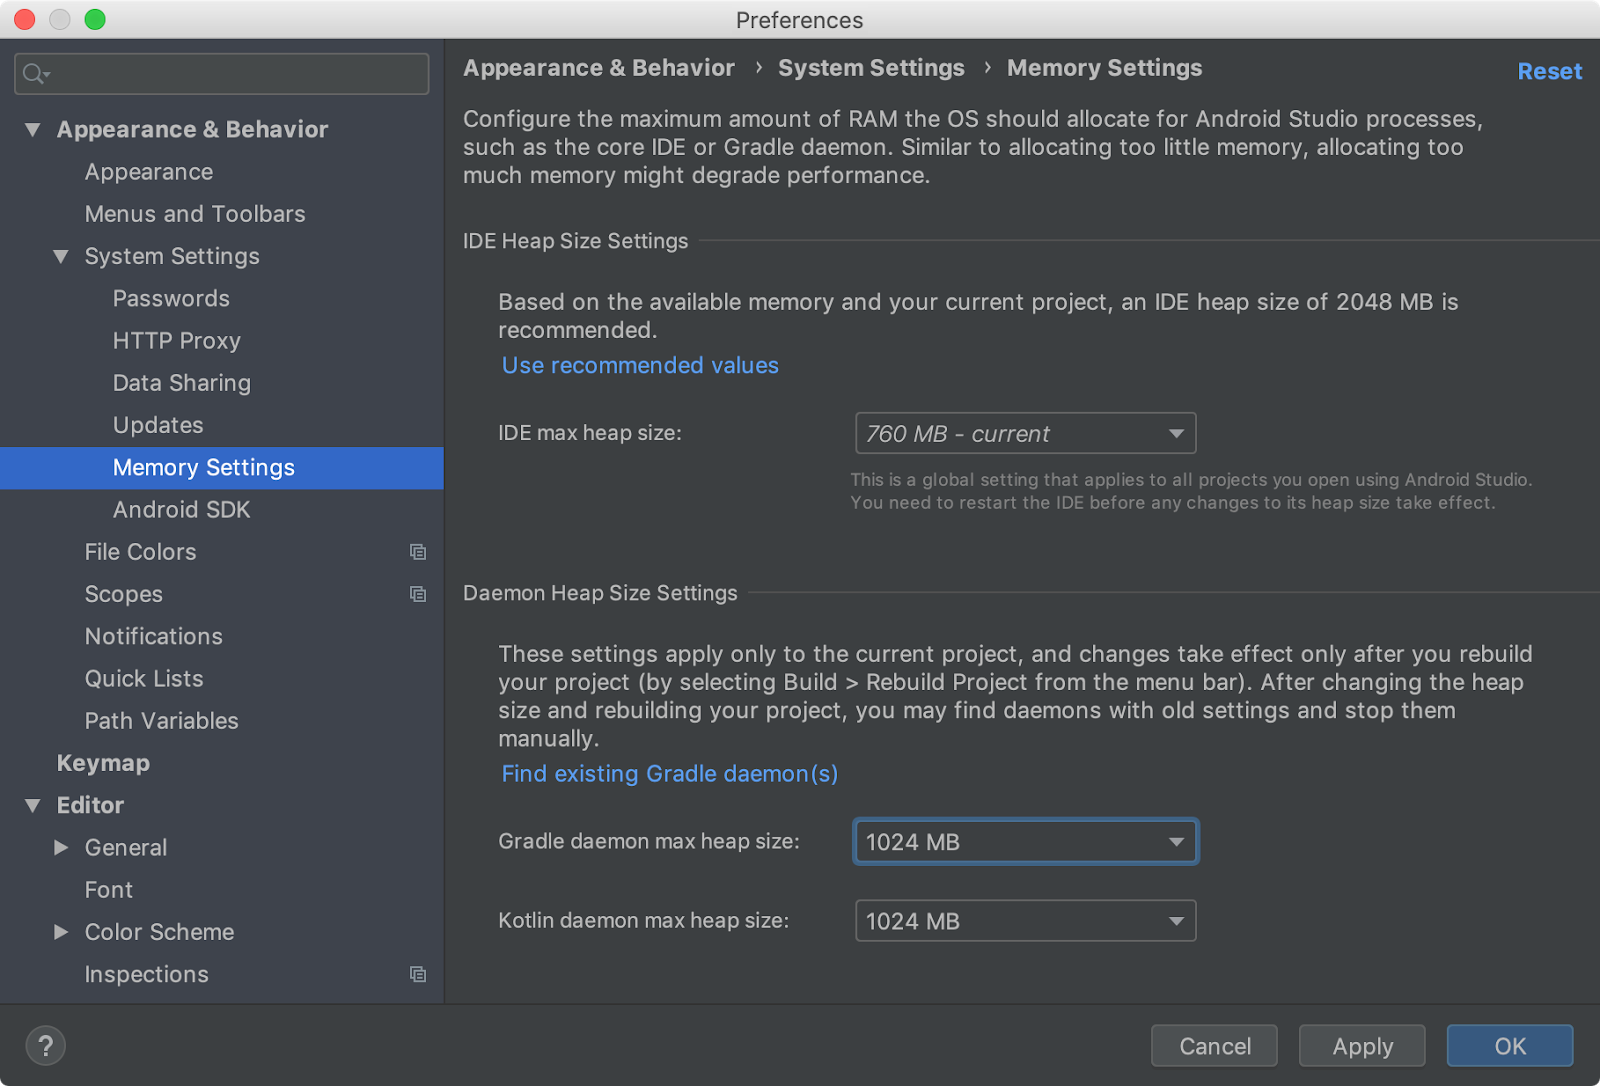 Google addresses memory issues for Android Studio